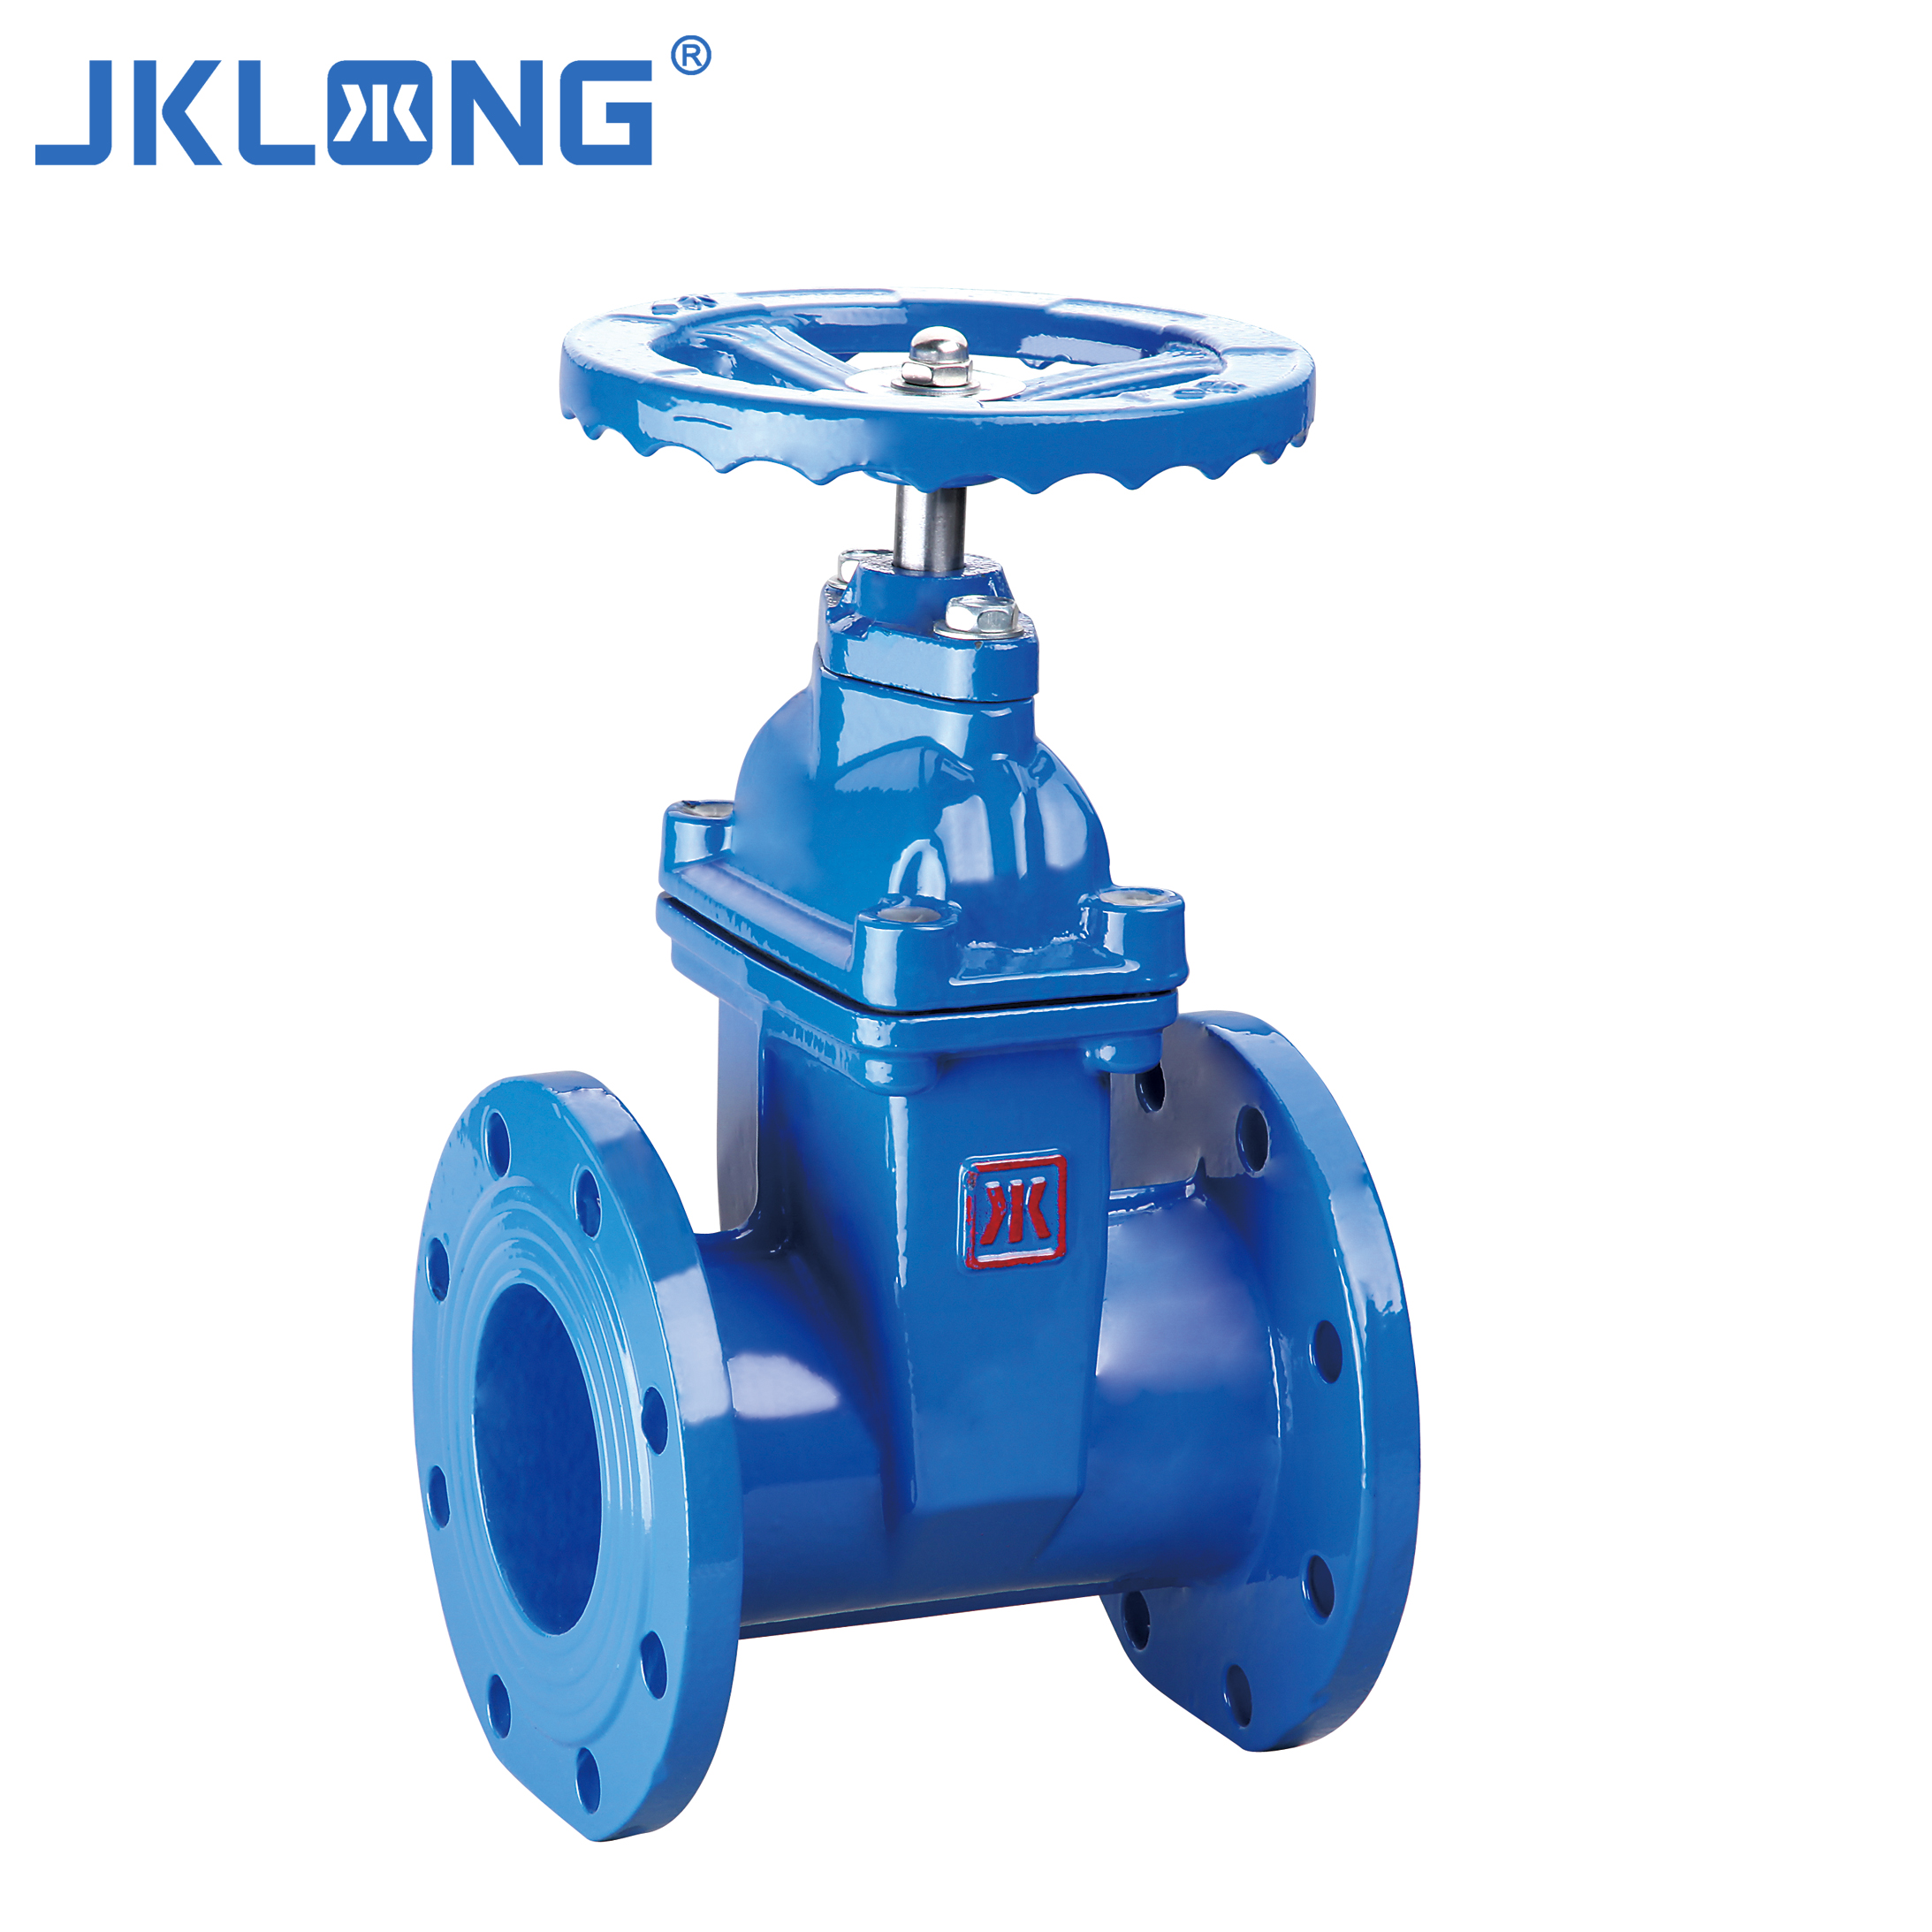 Superior On Time Delivery iron rising stem gate valve full bore globe drain brass ball valve brass stem valve